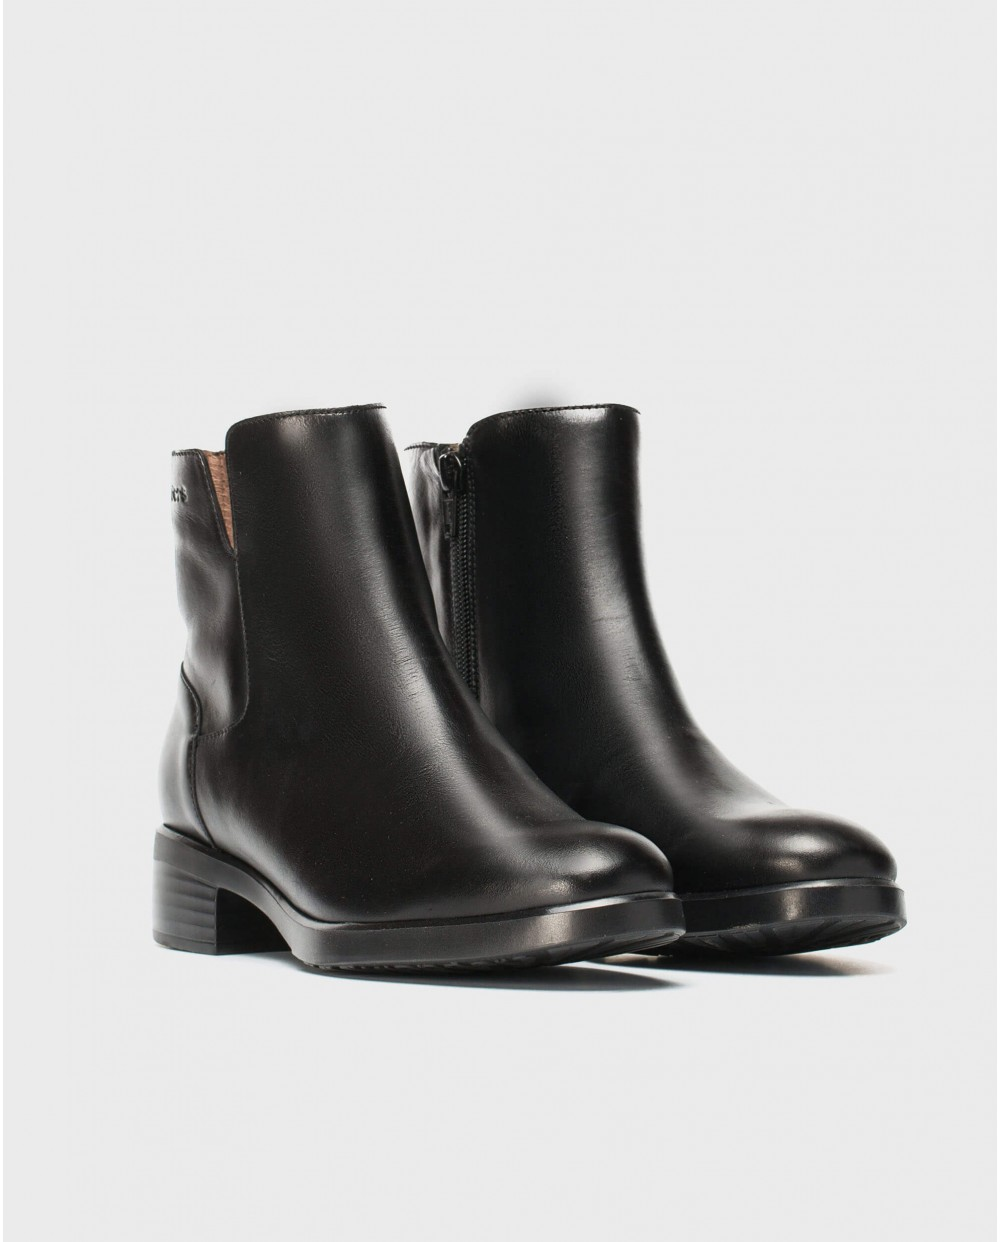 Wonders-Ankle Boots-Soft leather ankle boot